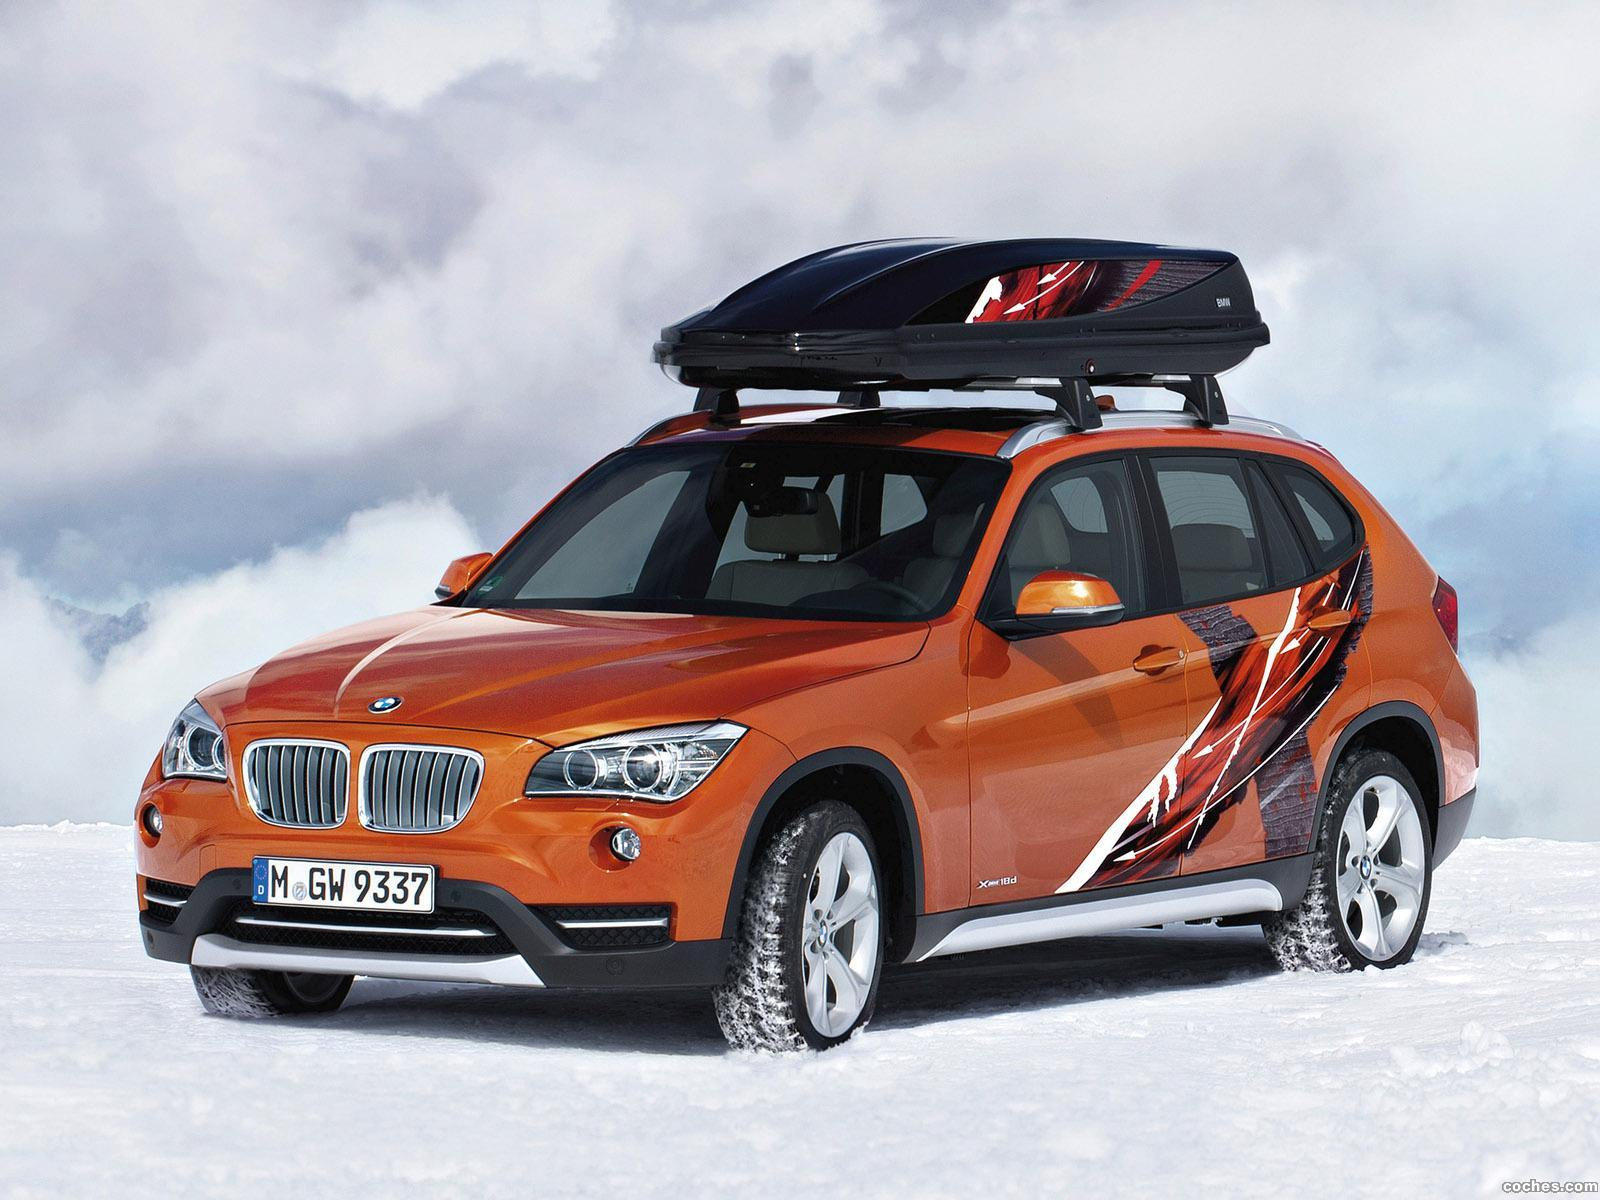 Foto 0 de BMW X1 Powder Ride Edition E84 2012